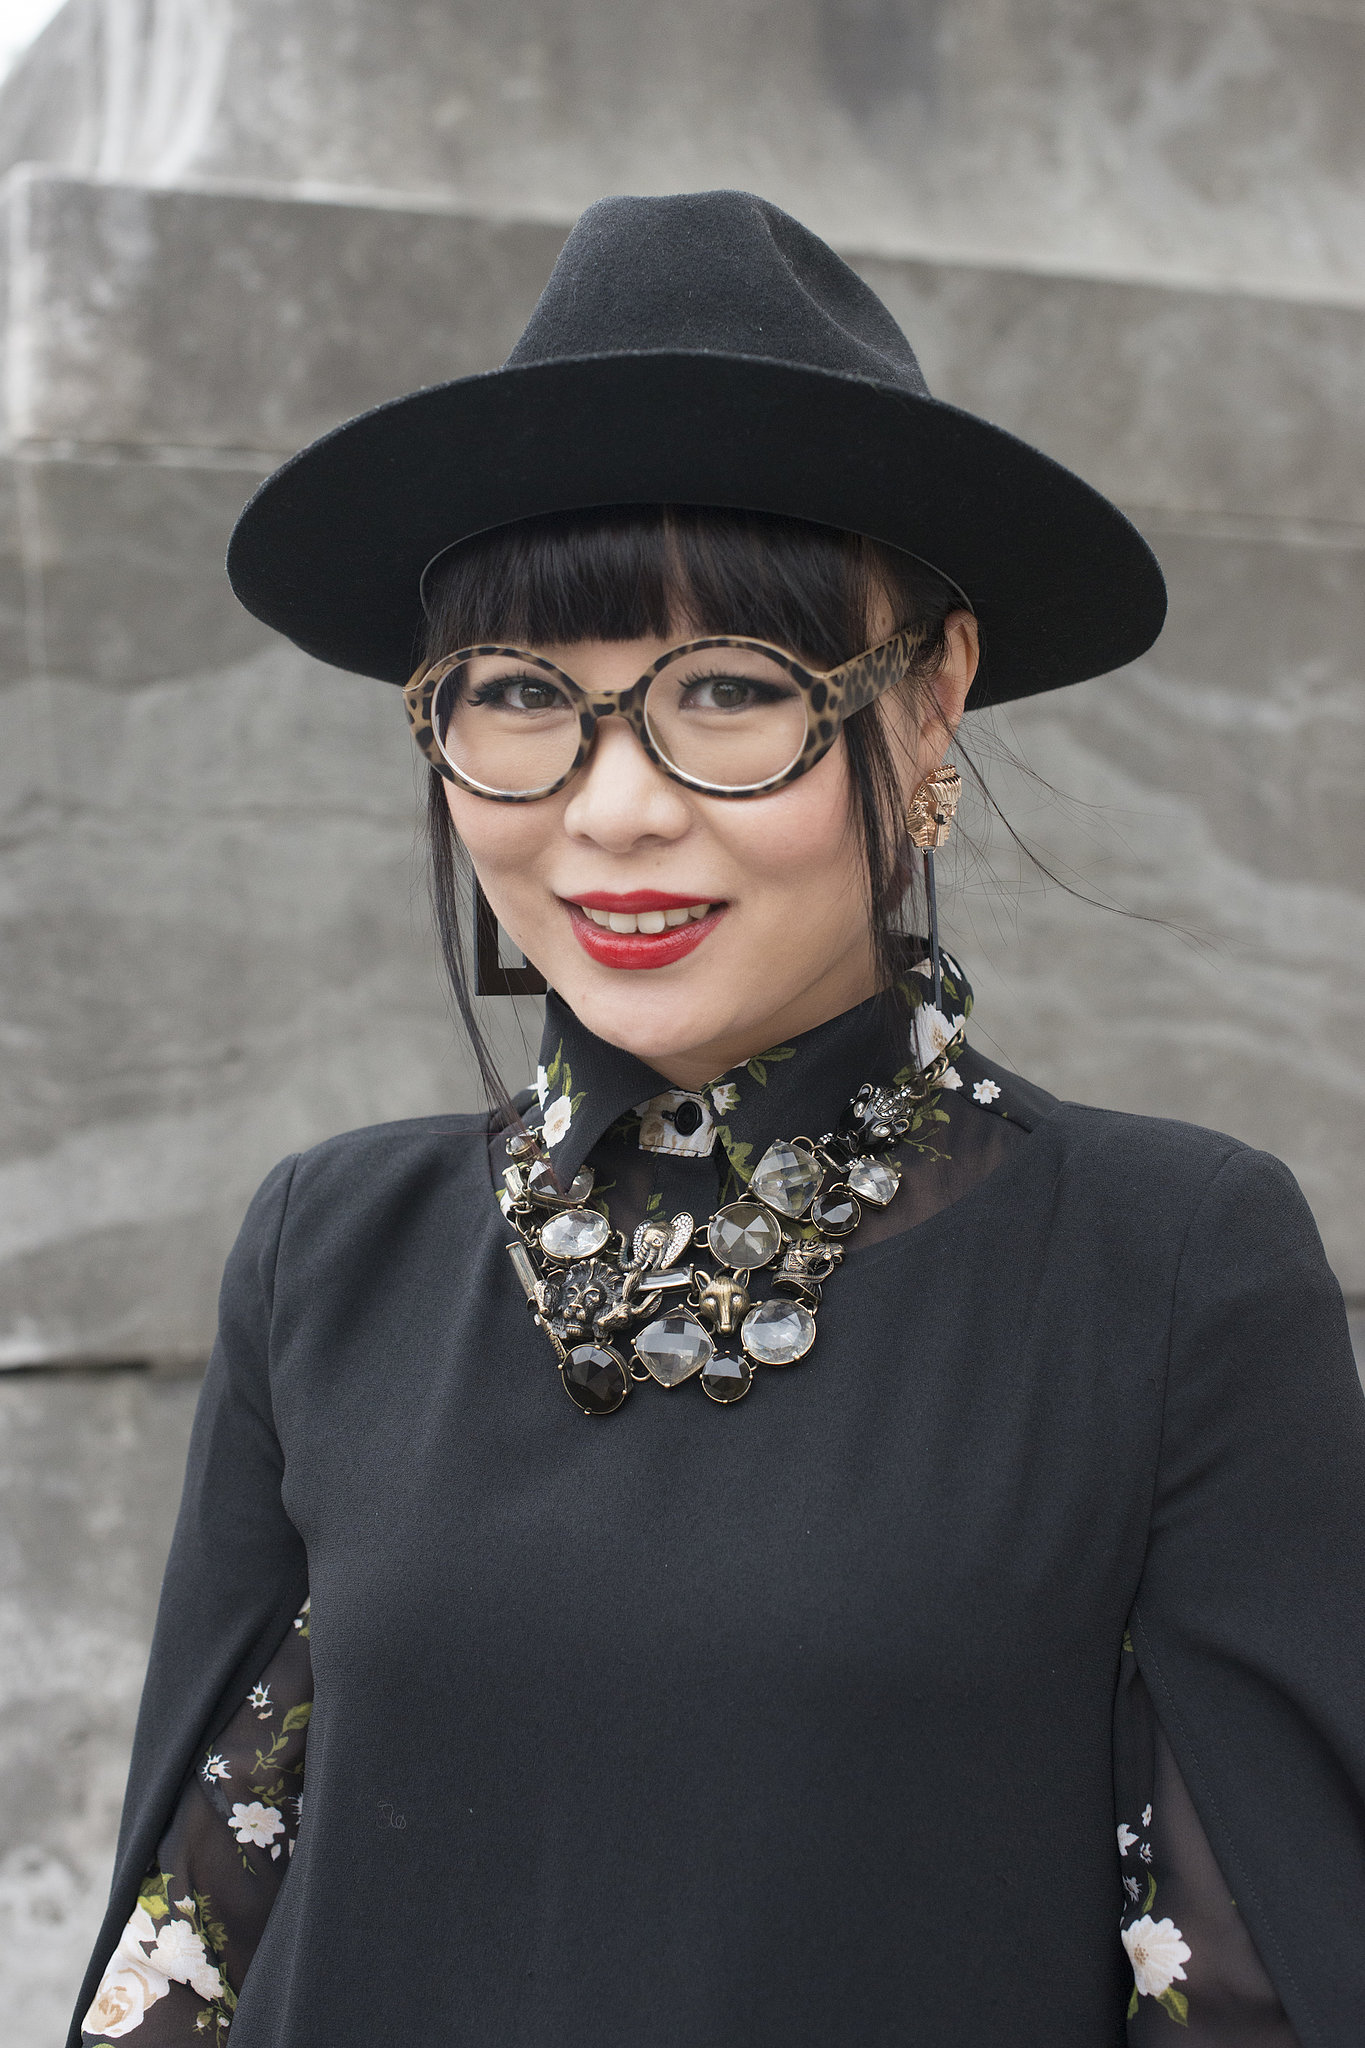 Blunt bangs look especially gorgeous under a brimmed cap.